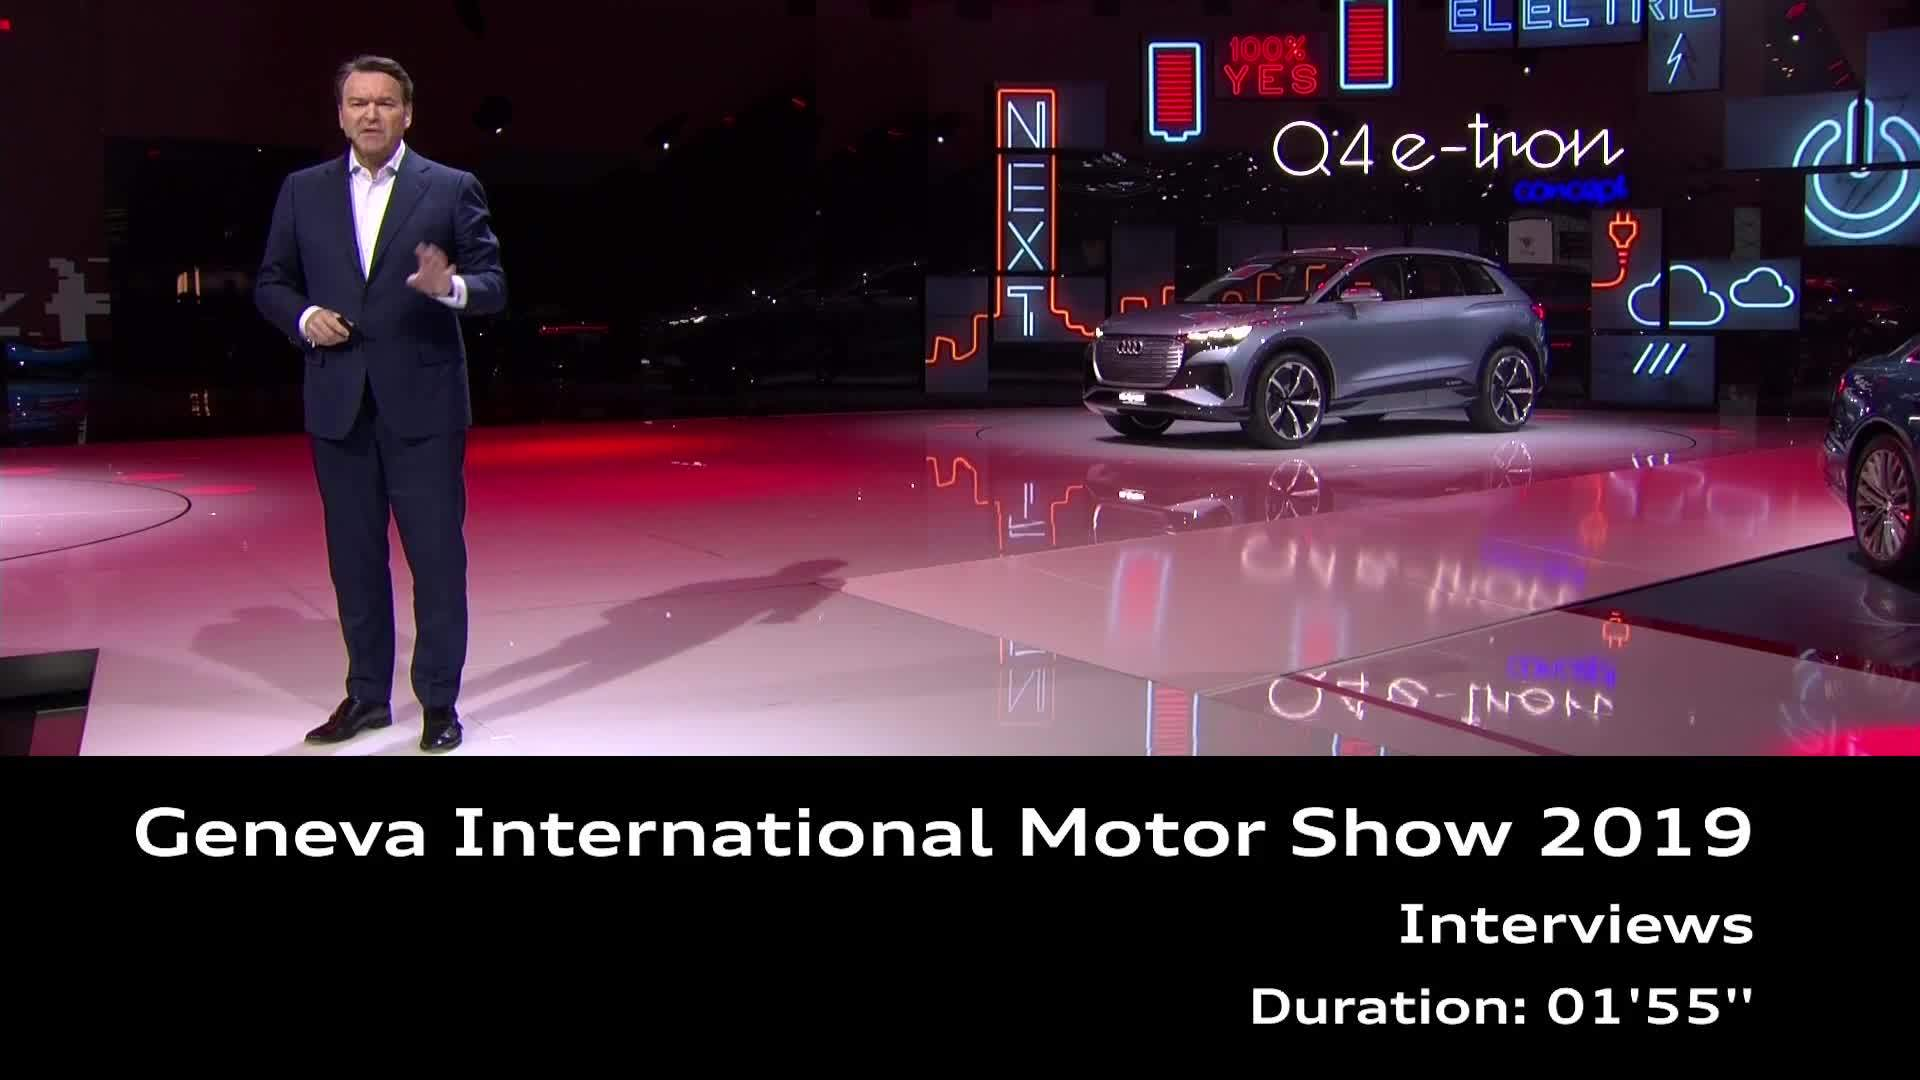 Audi at the 2019 Geneva Motorshow (Interviews)